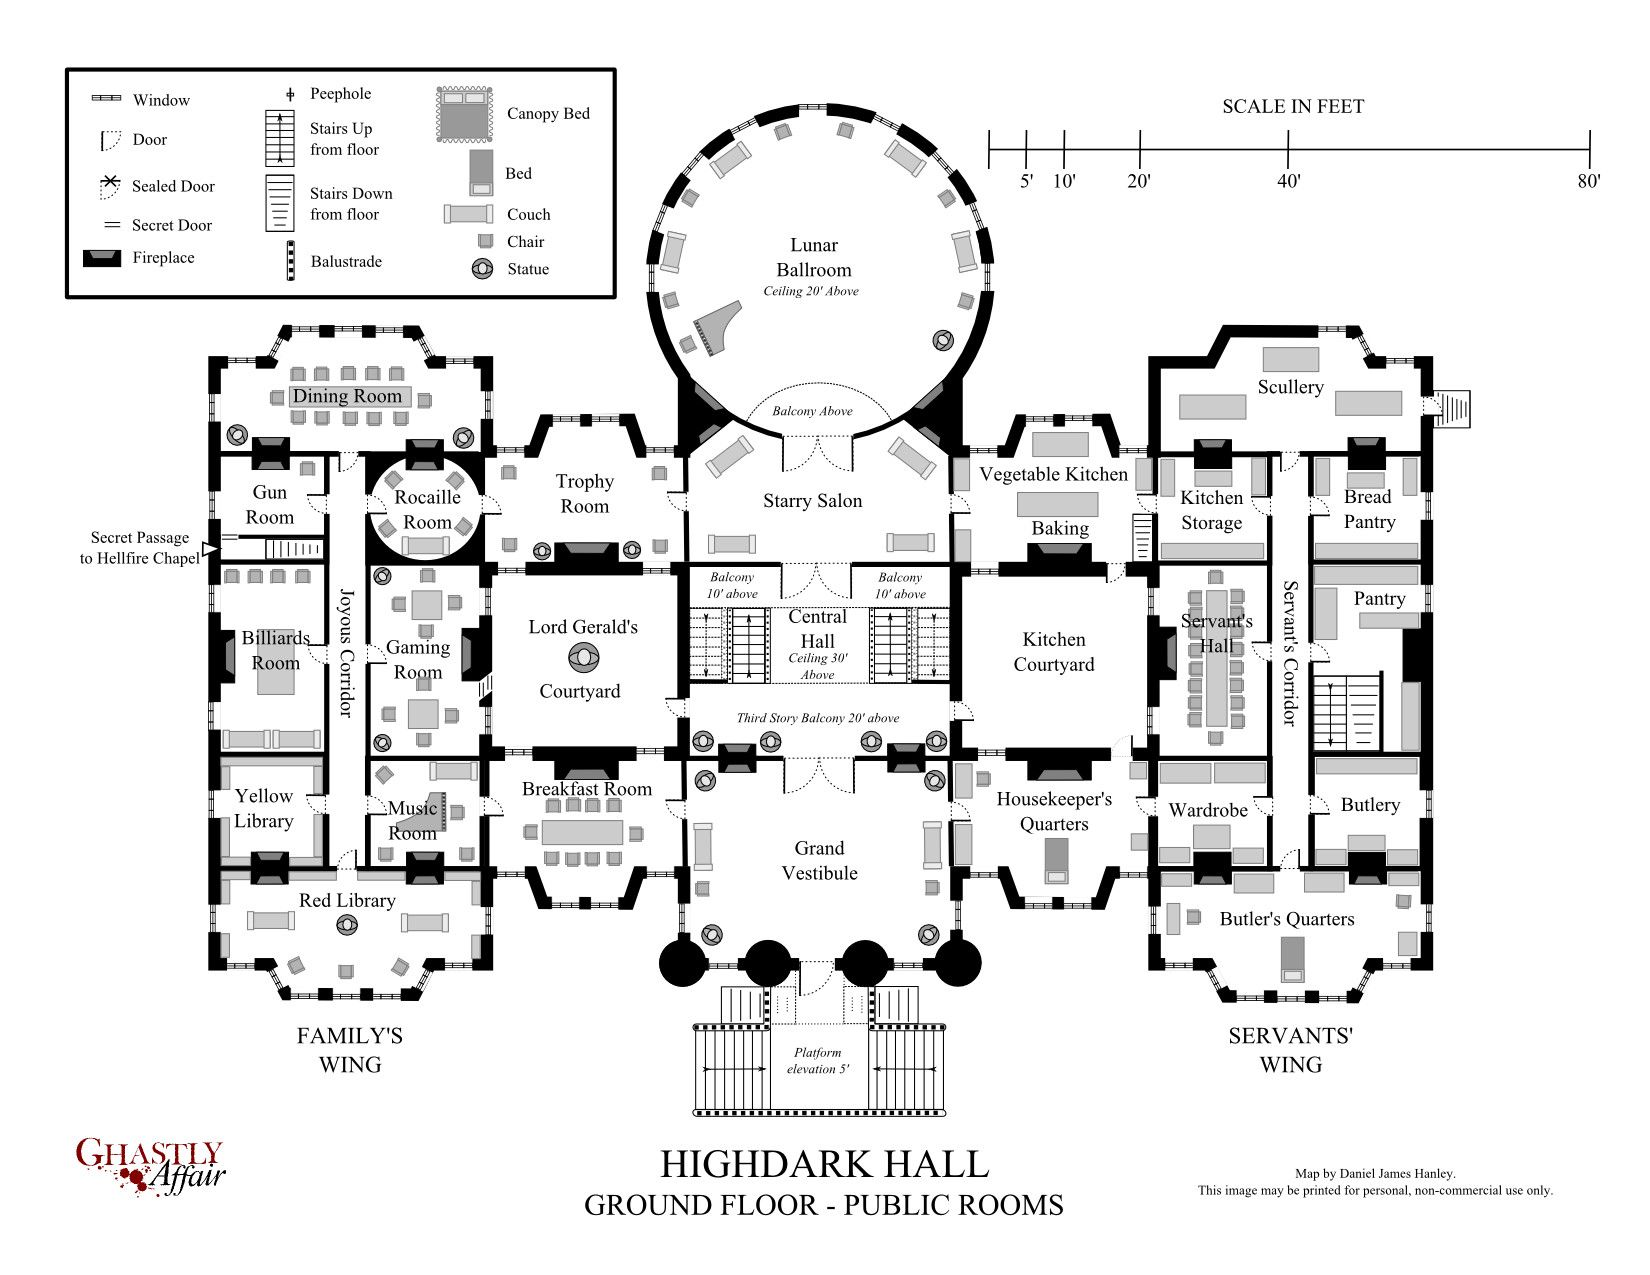 Floor Plan Mansions And Hotels With Secret Passages And Rooms Highdark Hall A Setting For Gothic Role Mansion Floor Plan Castle Floor Plan House Floor Plans